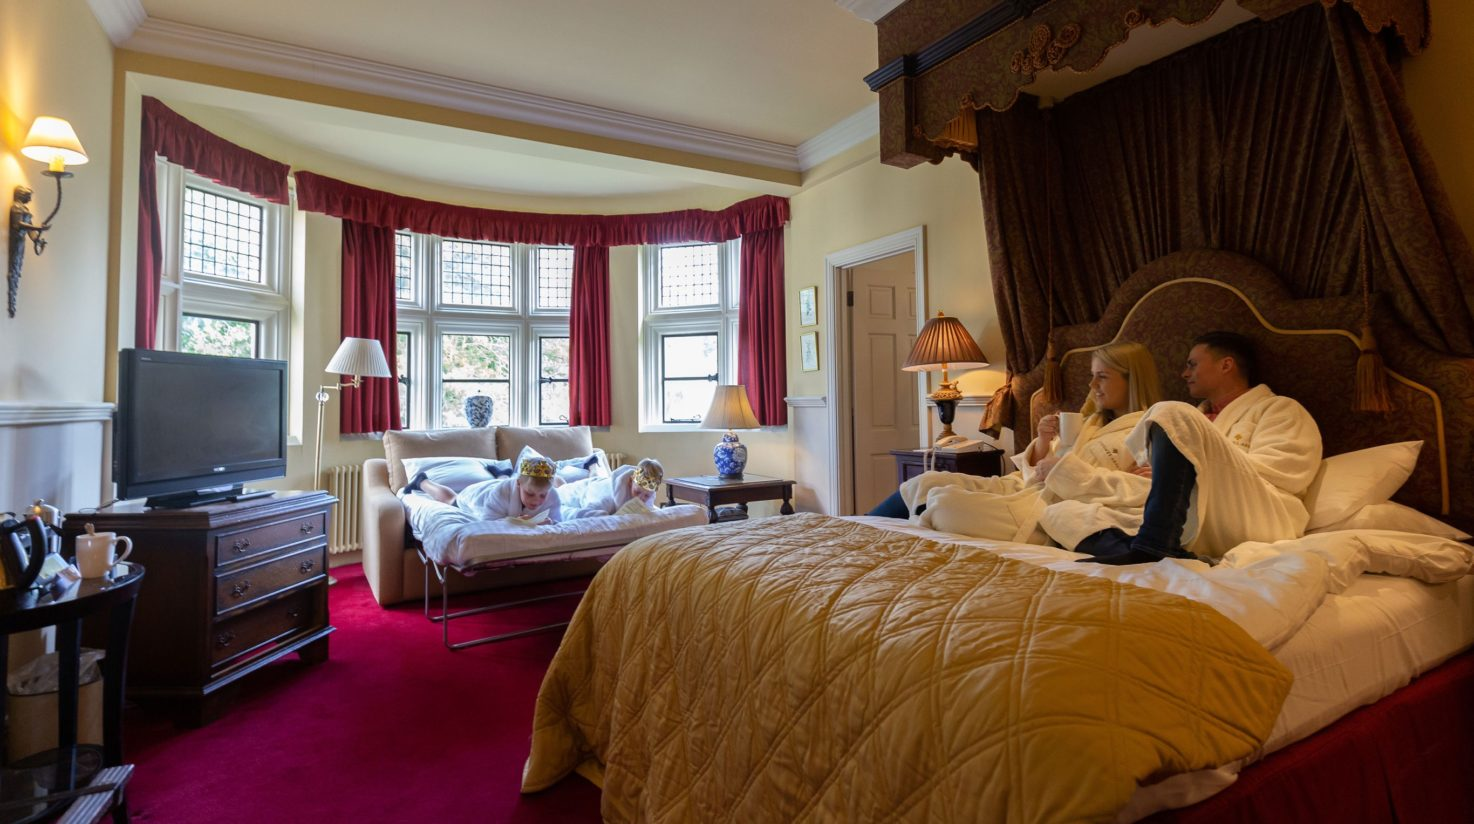 Family Room at Coombe Abbey